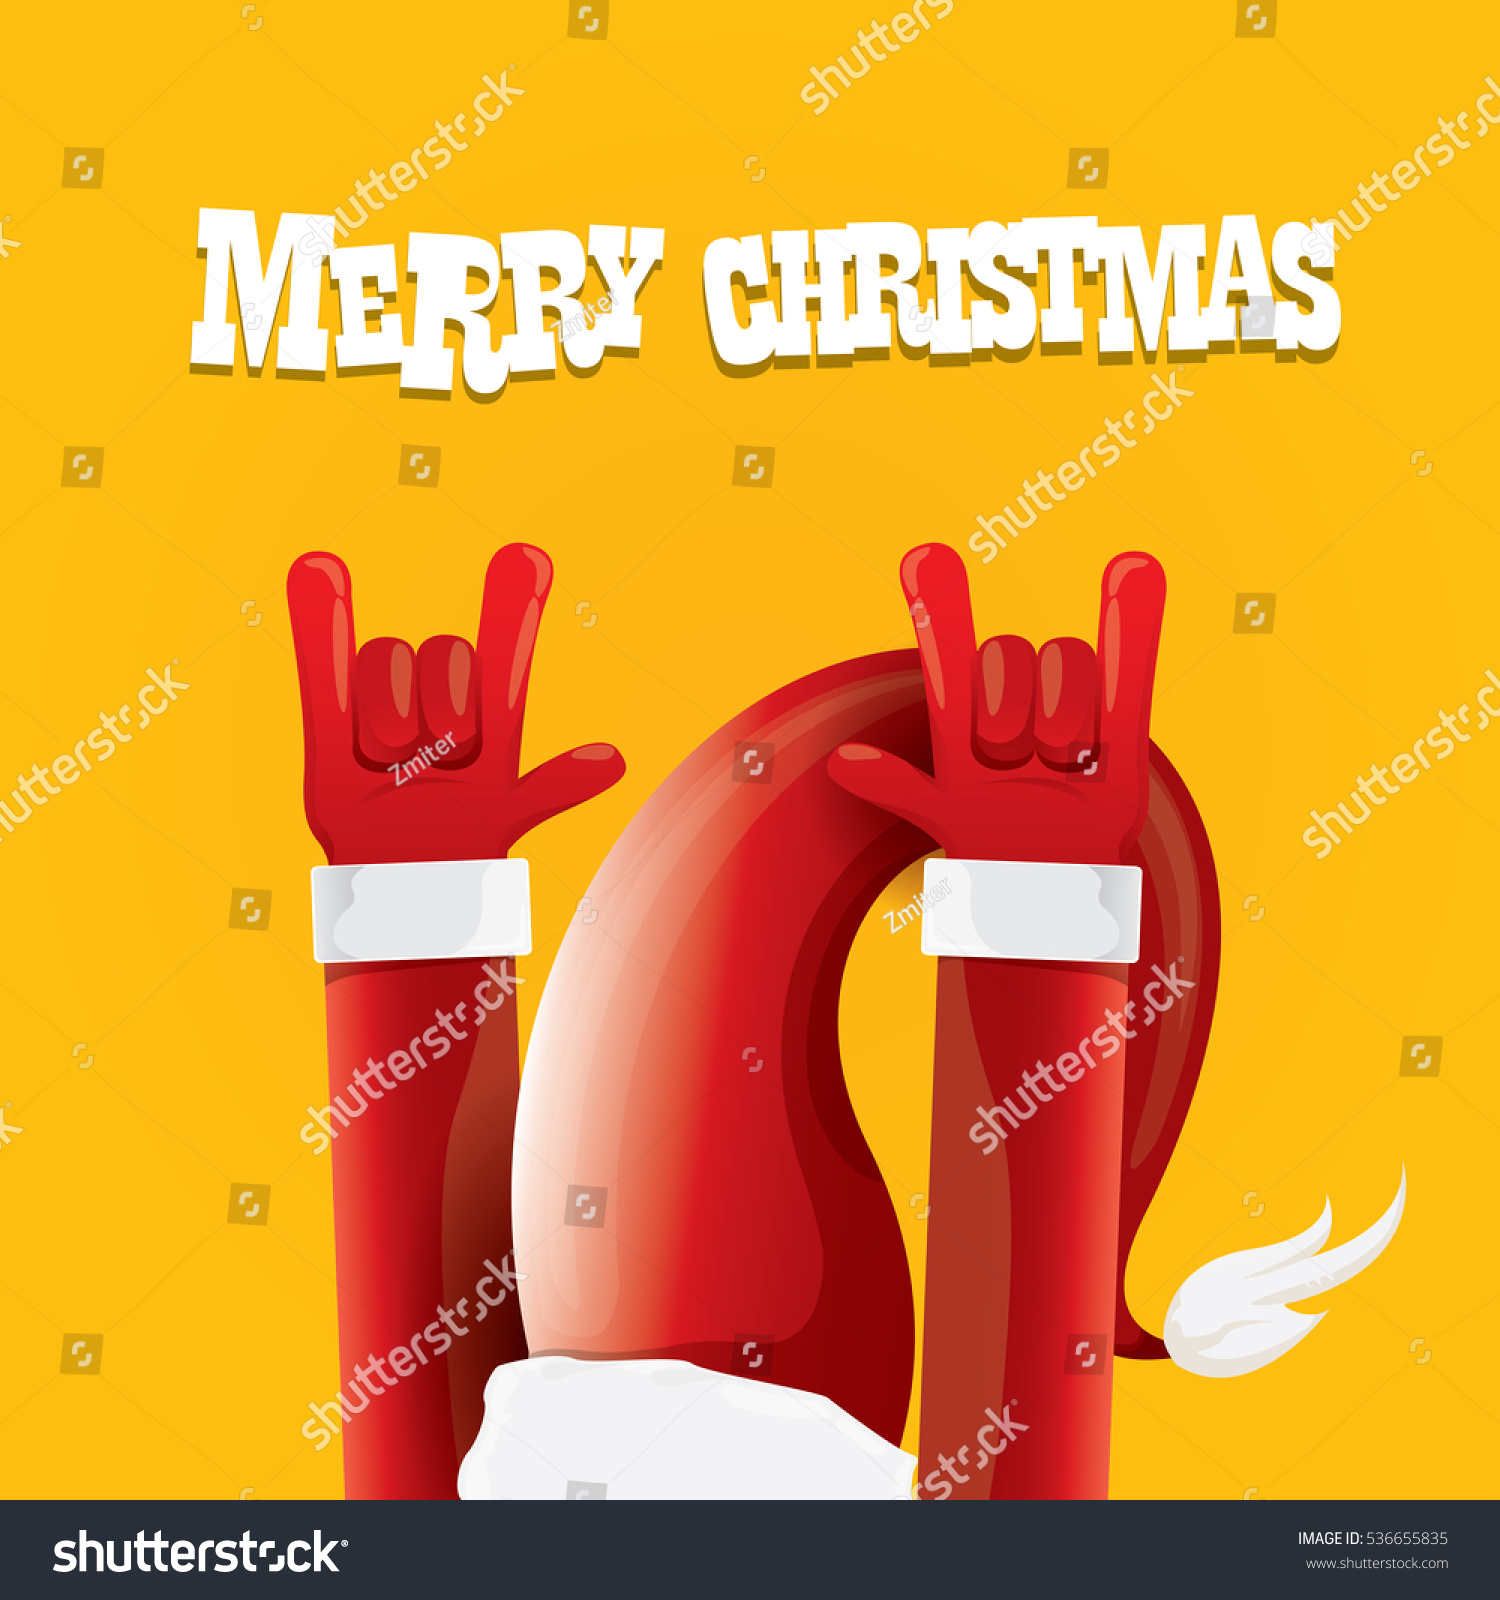 Rock n roll poster design - Vector Santa Claus Rock N Roll Style Merry Christmas Rock N Roll Party Poster Design